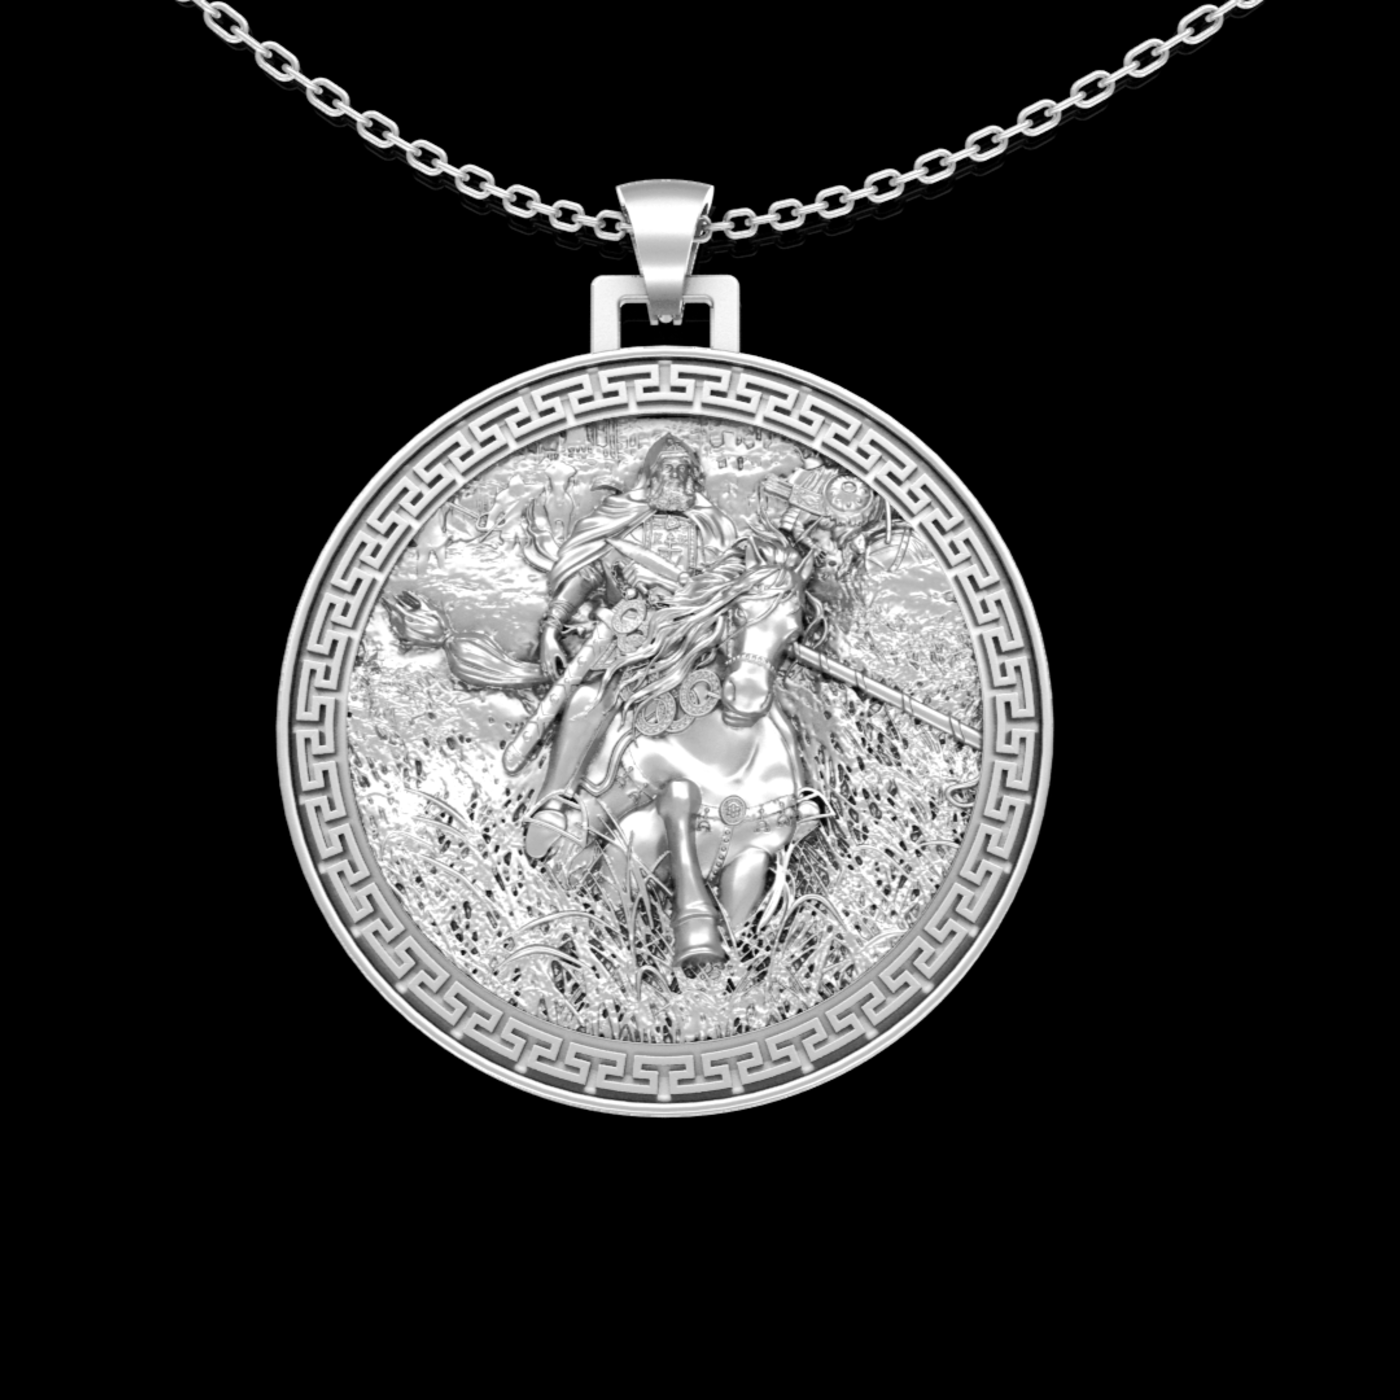 Warrior Crusade pendant jewelry gold necklace medallion 3D print model